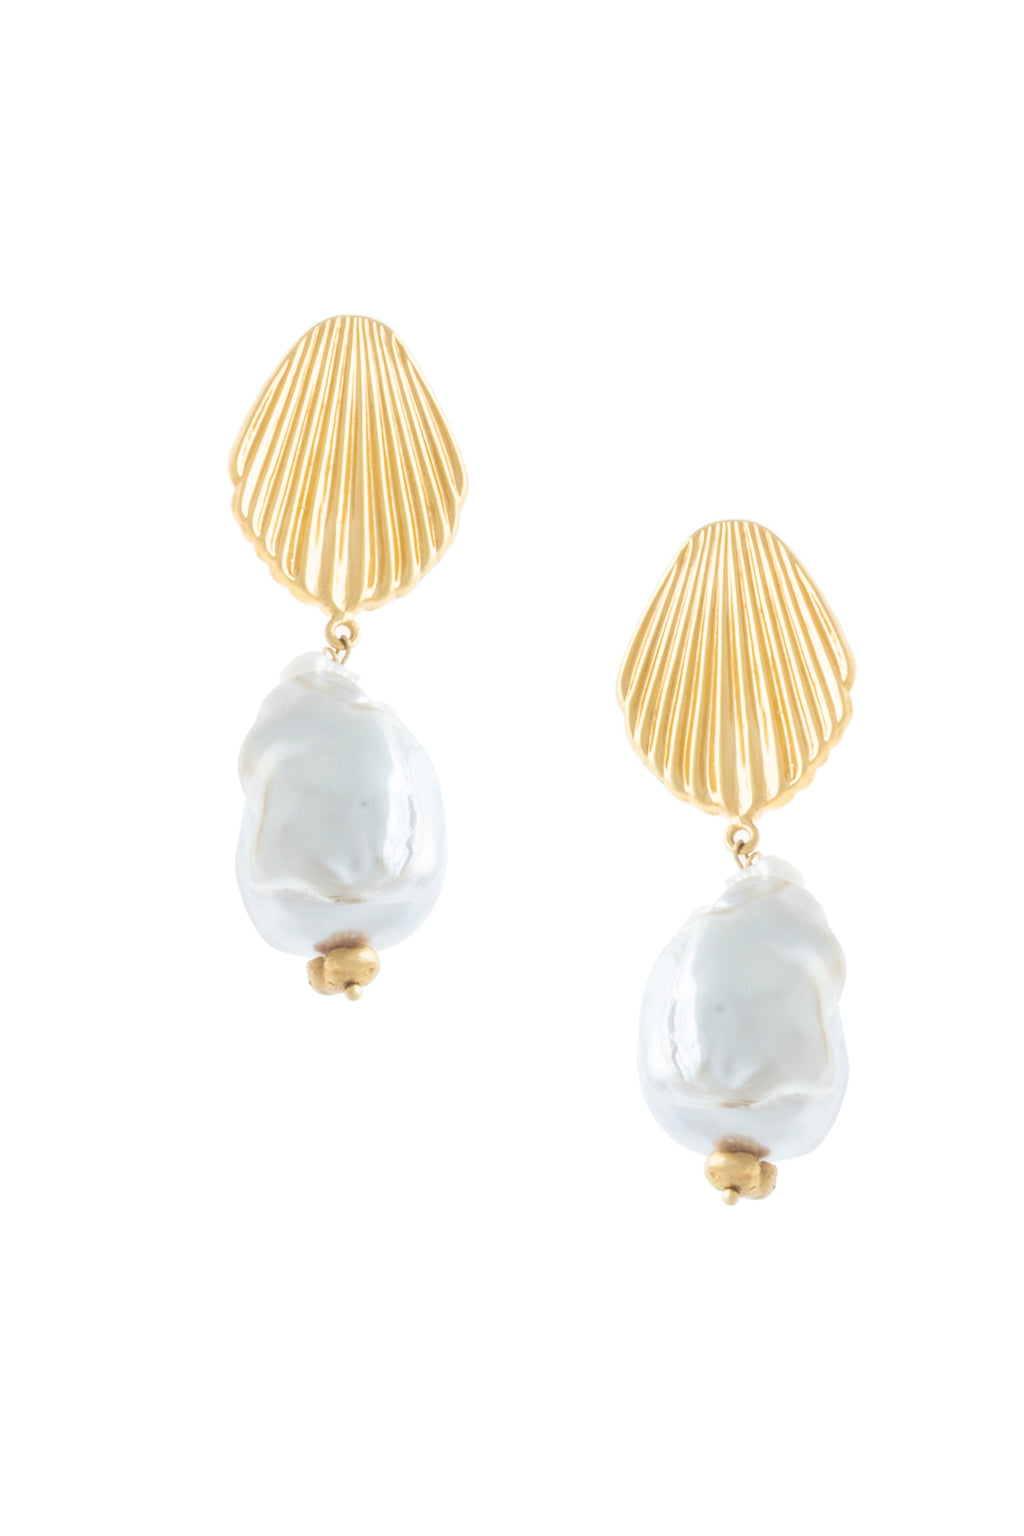 SEASHELL EARRINGS WITH CULTURED PEARLS